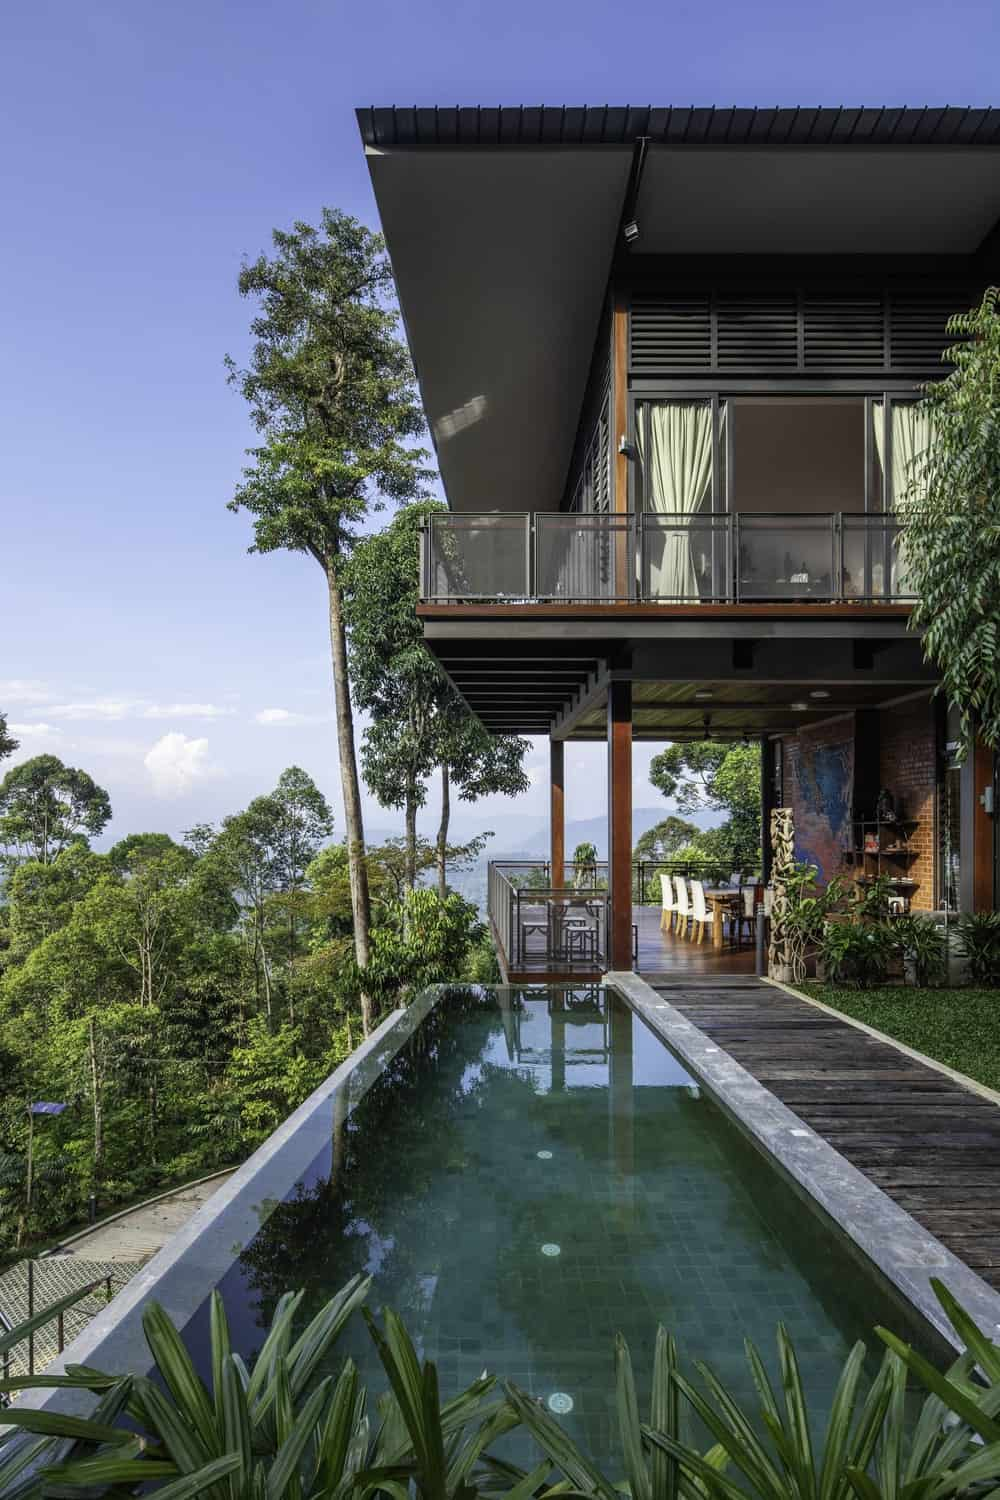 The infinity pool has a clear view of the balconies and the surrounding landscape.